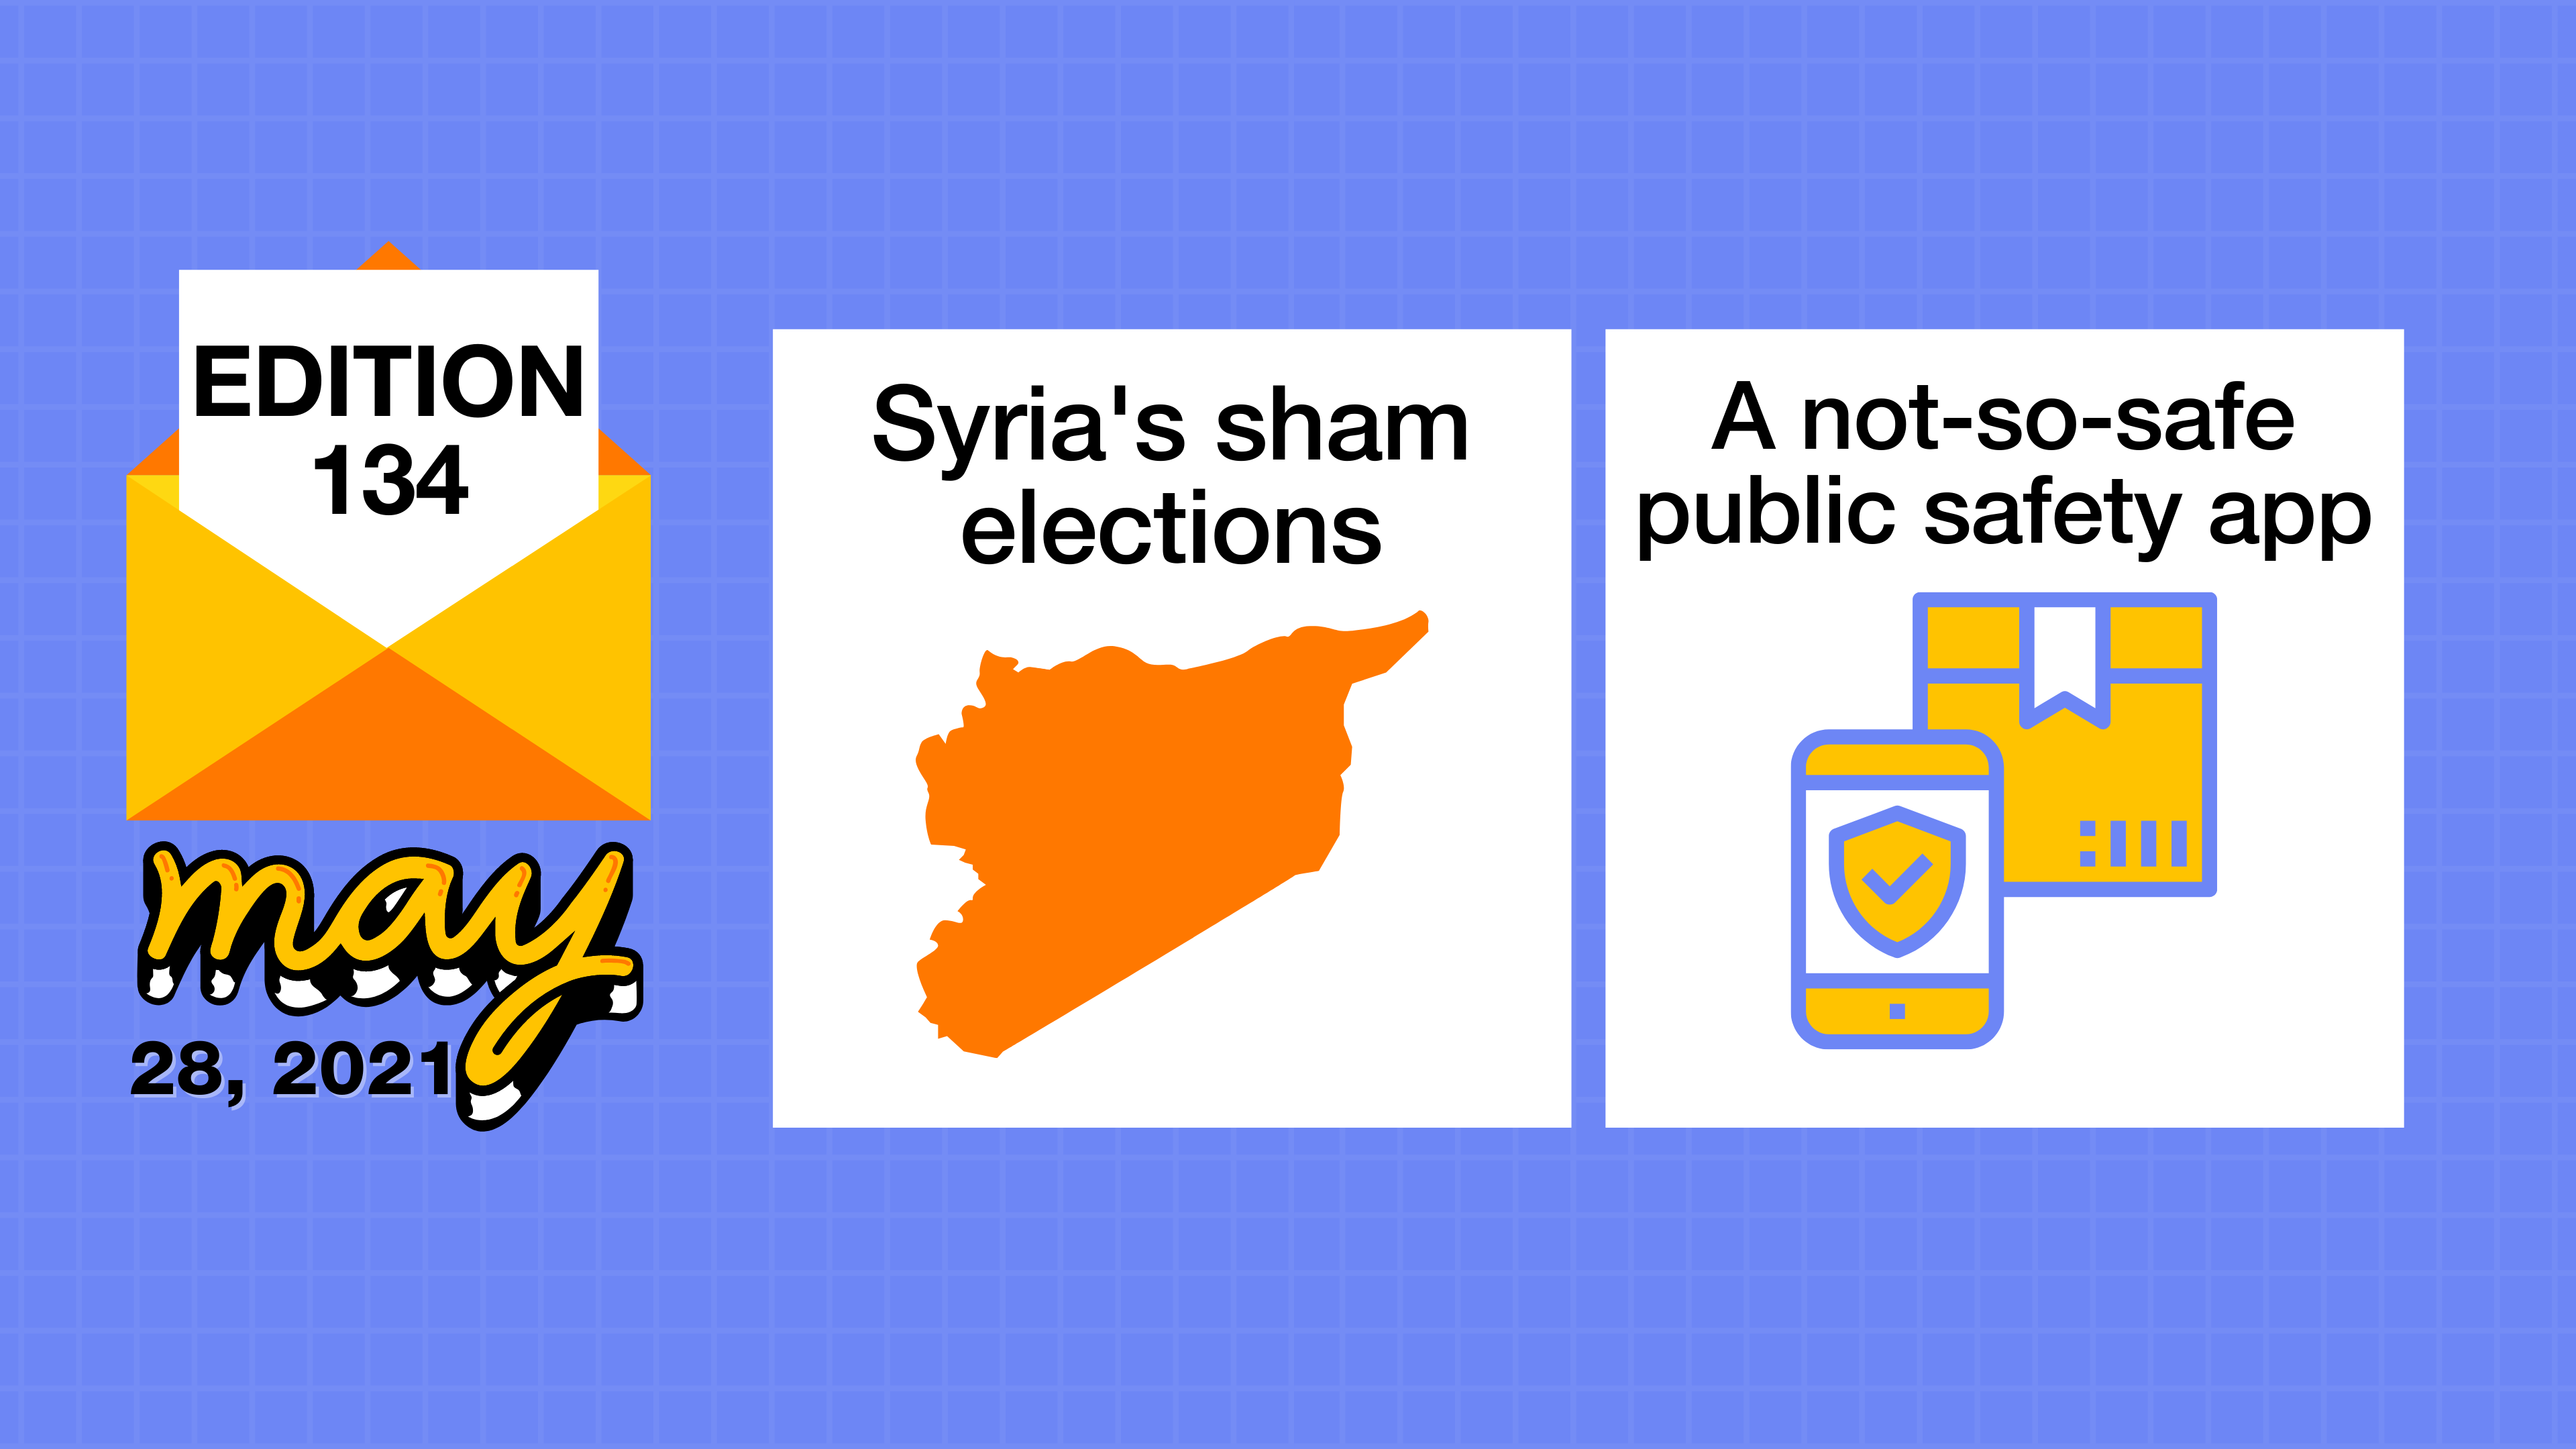 Syria's illegitimate elections and a not-so-safe safety app